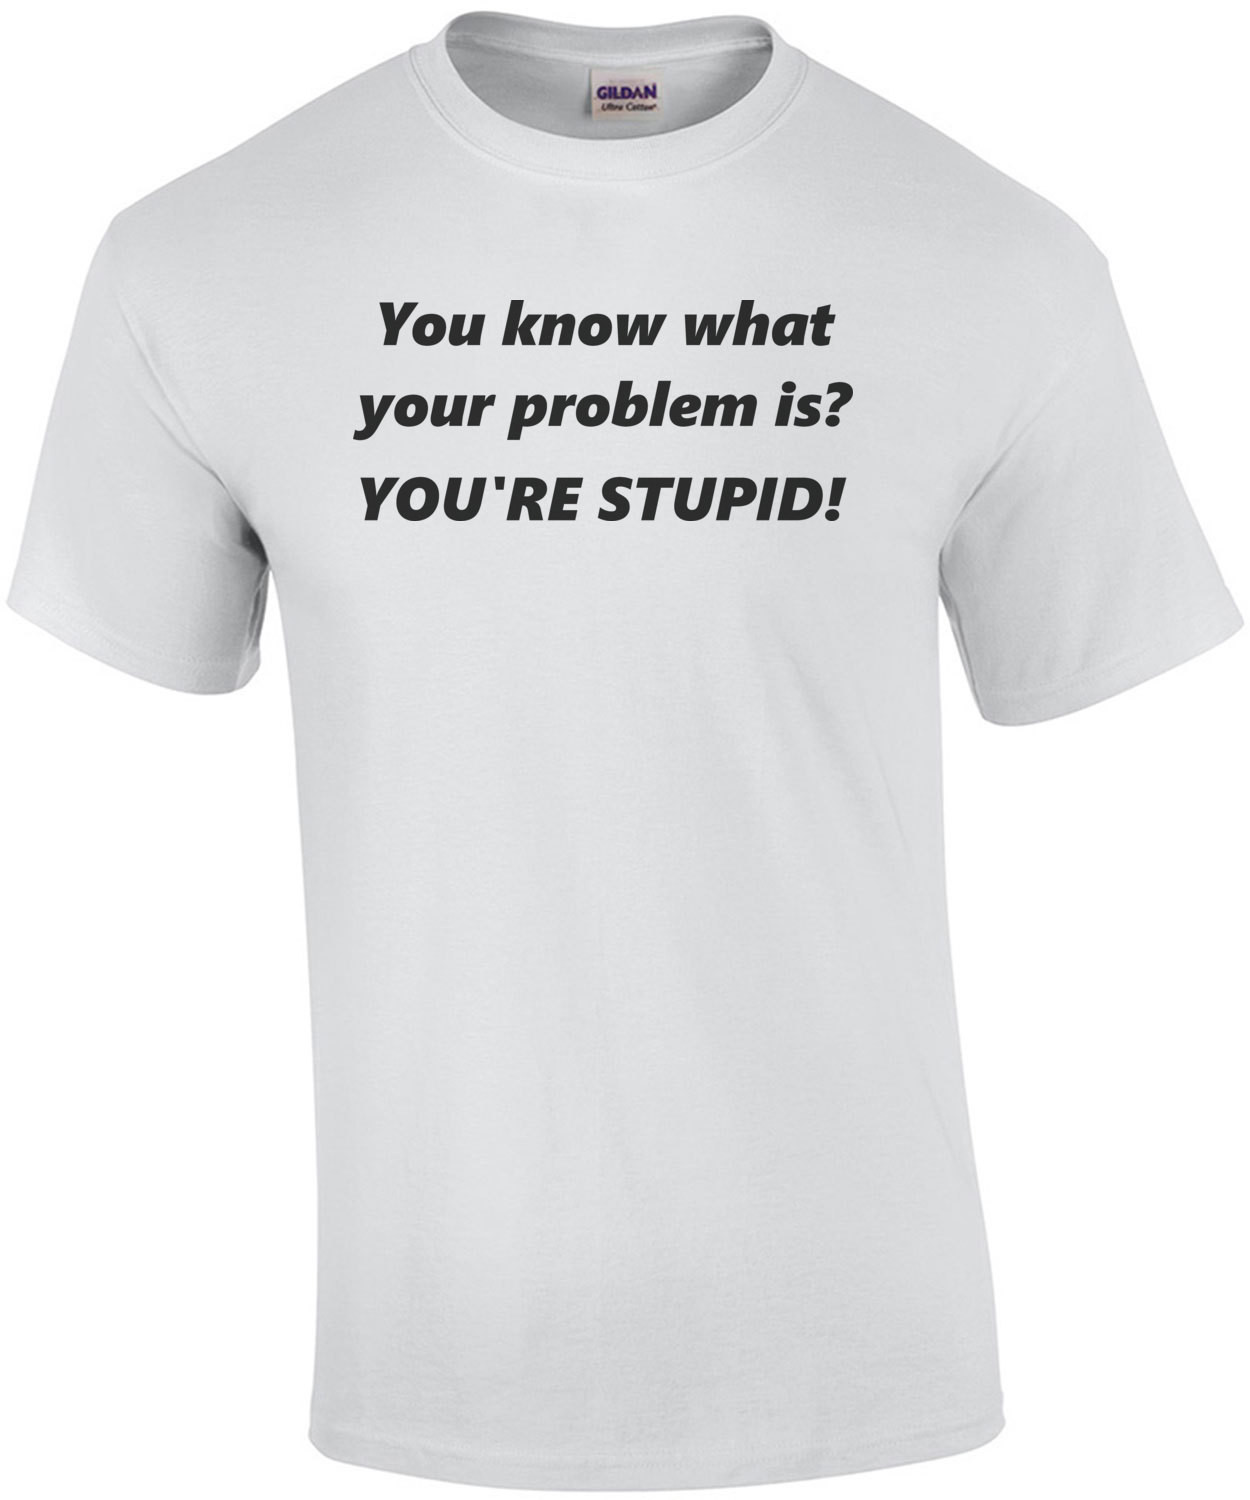 You know what your problem is? YOU'RE STUPID! Shirt